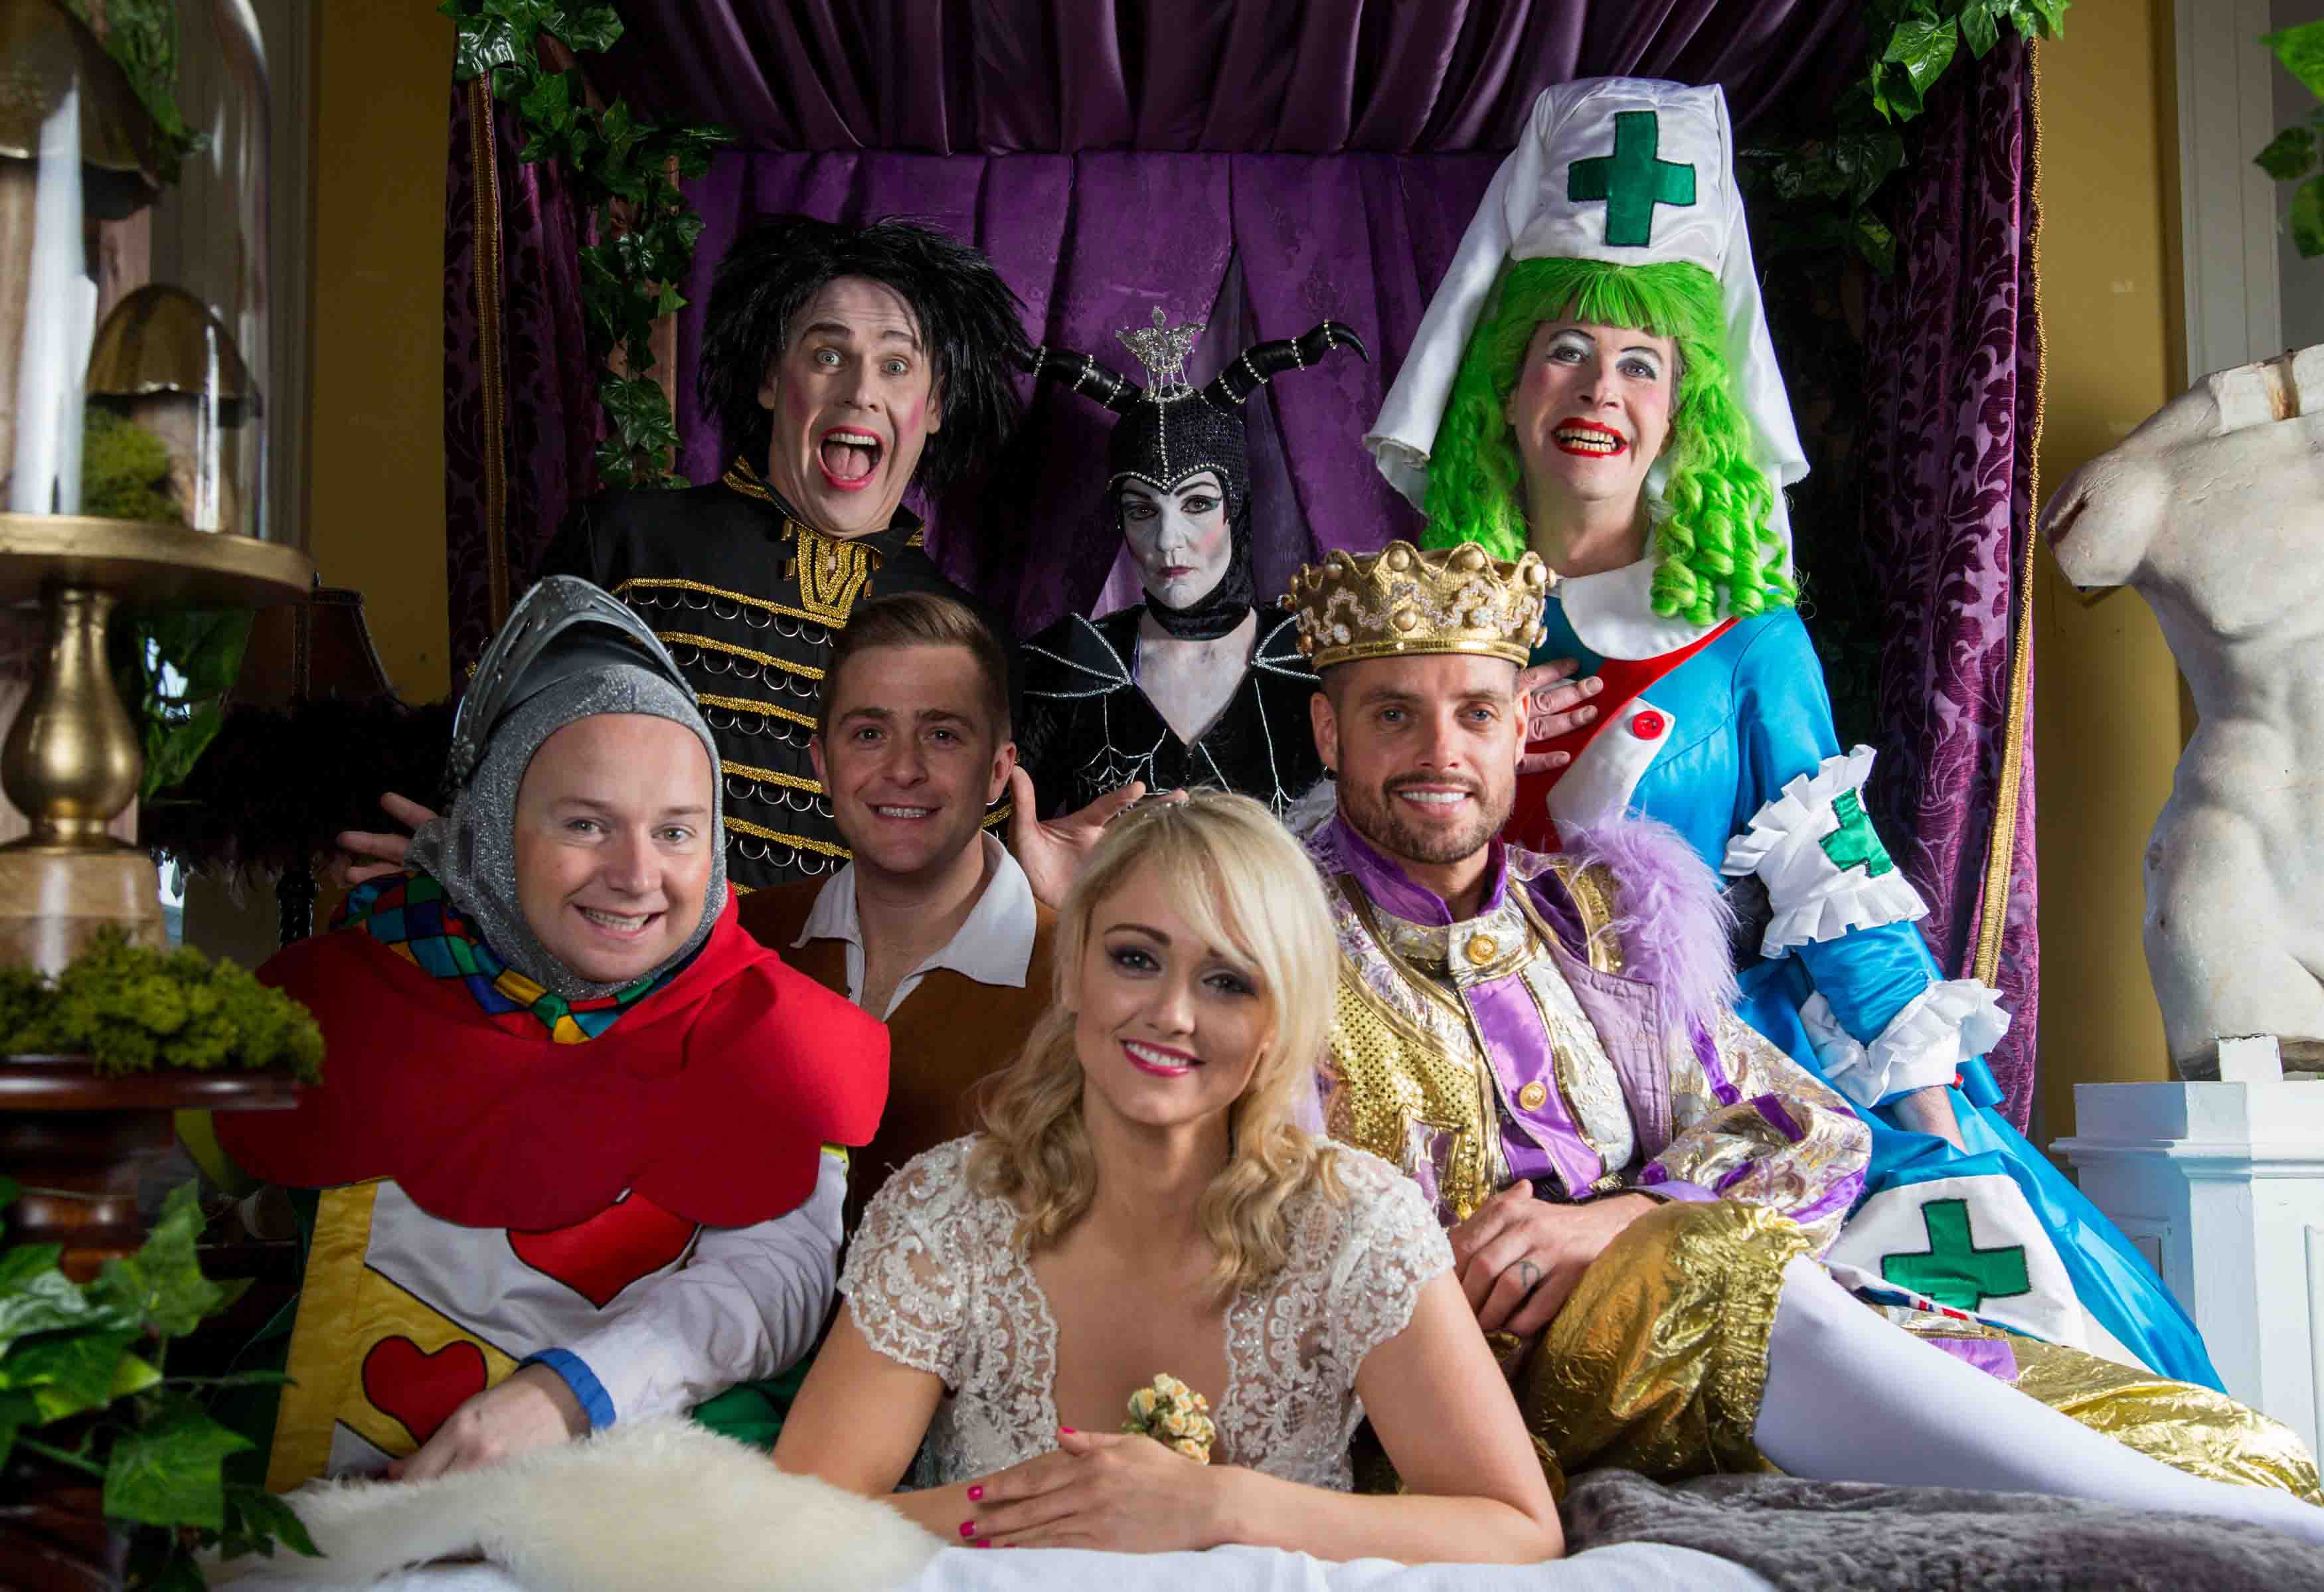 University Concert Hall Sleeping Beauty Panto is coming to Limerick